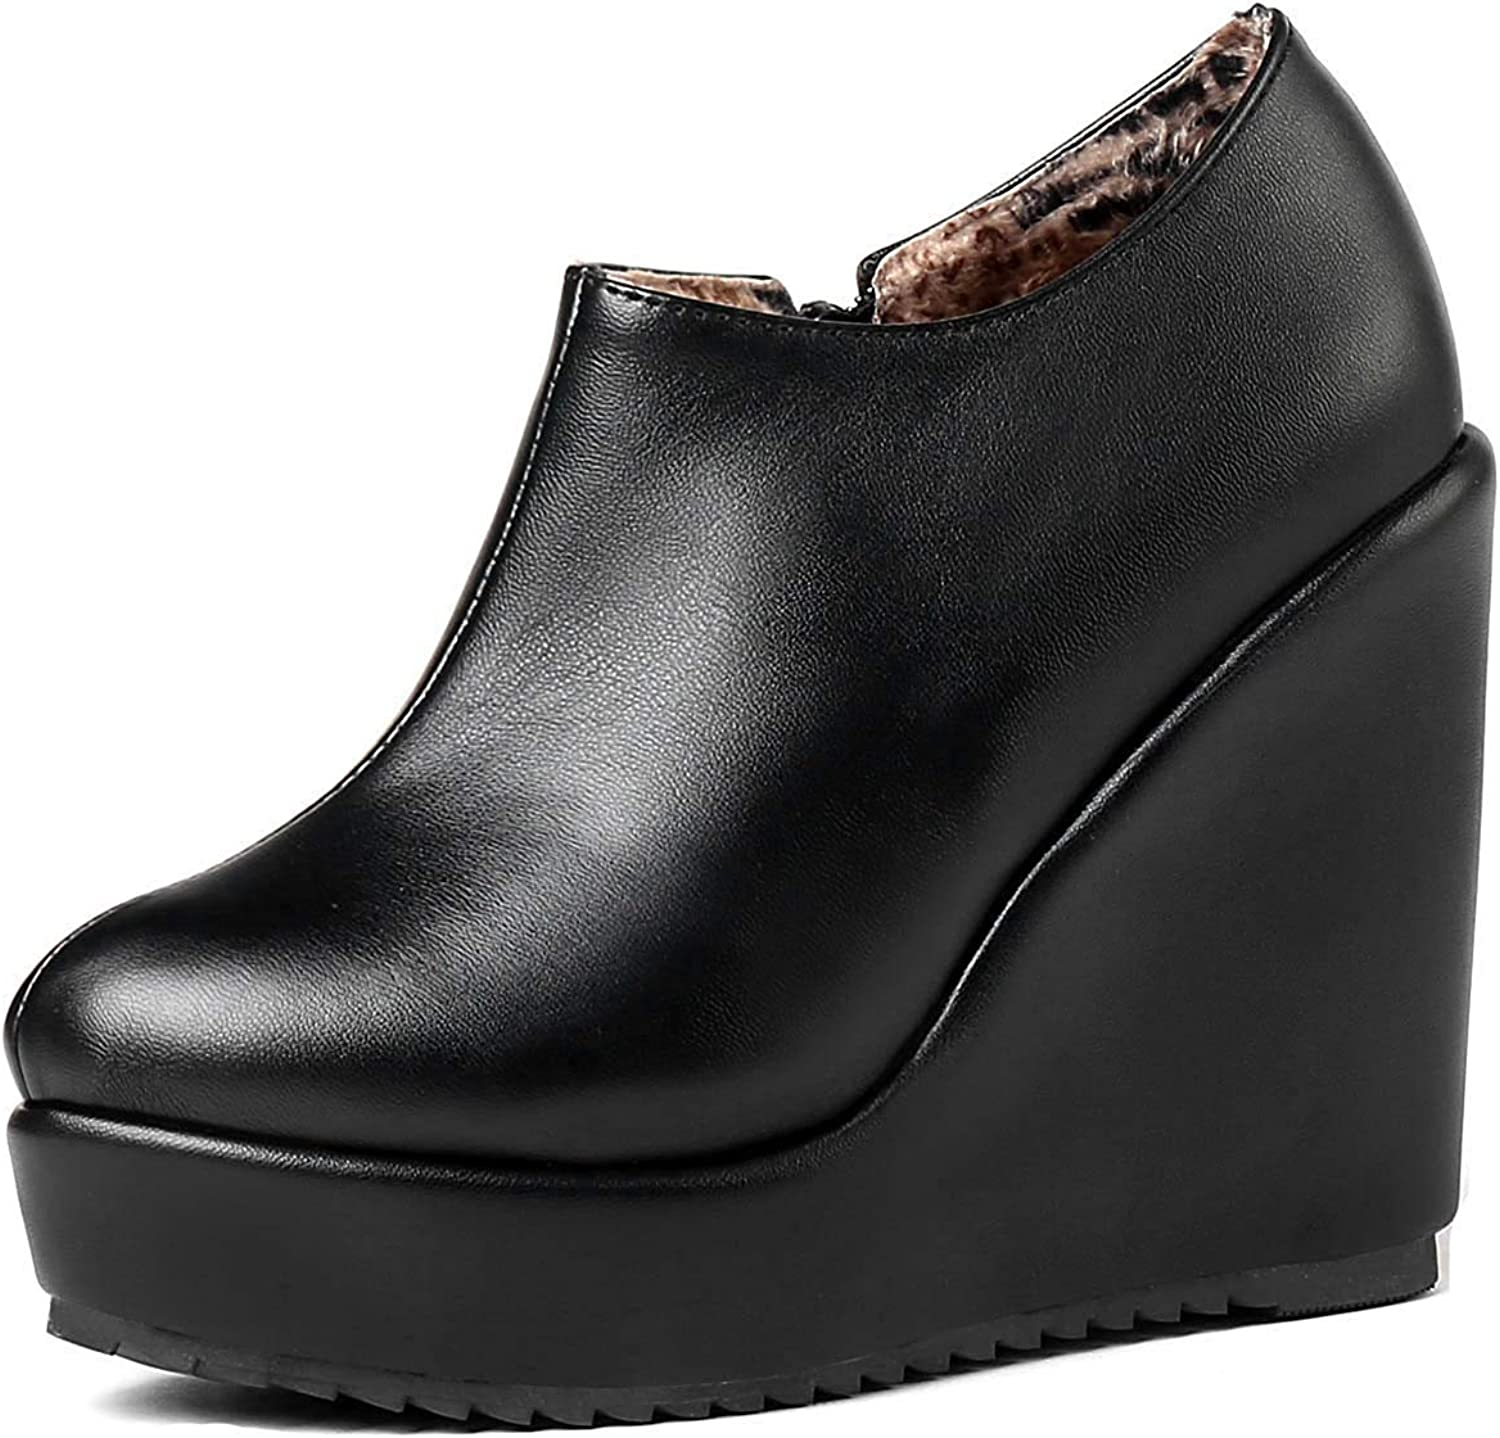 Unm Women's Fashion Round Toe Inside Zip Up Platform Ankle Boots High Heel Wedge Booties with Zipper